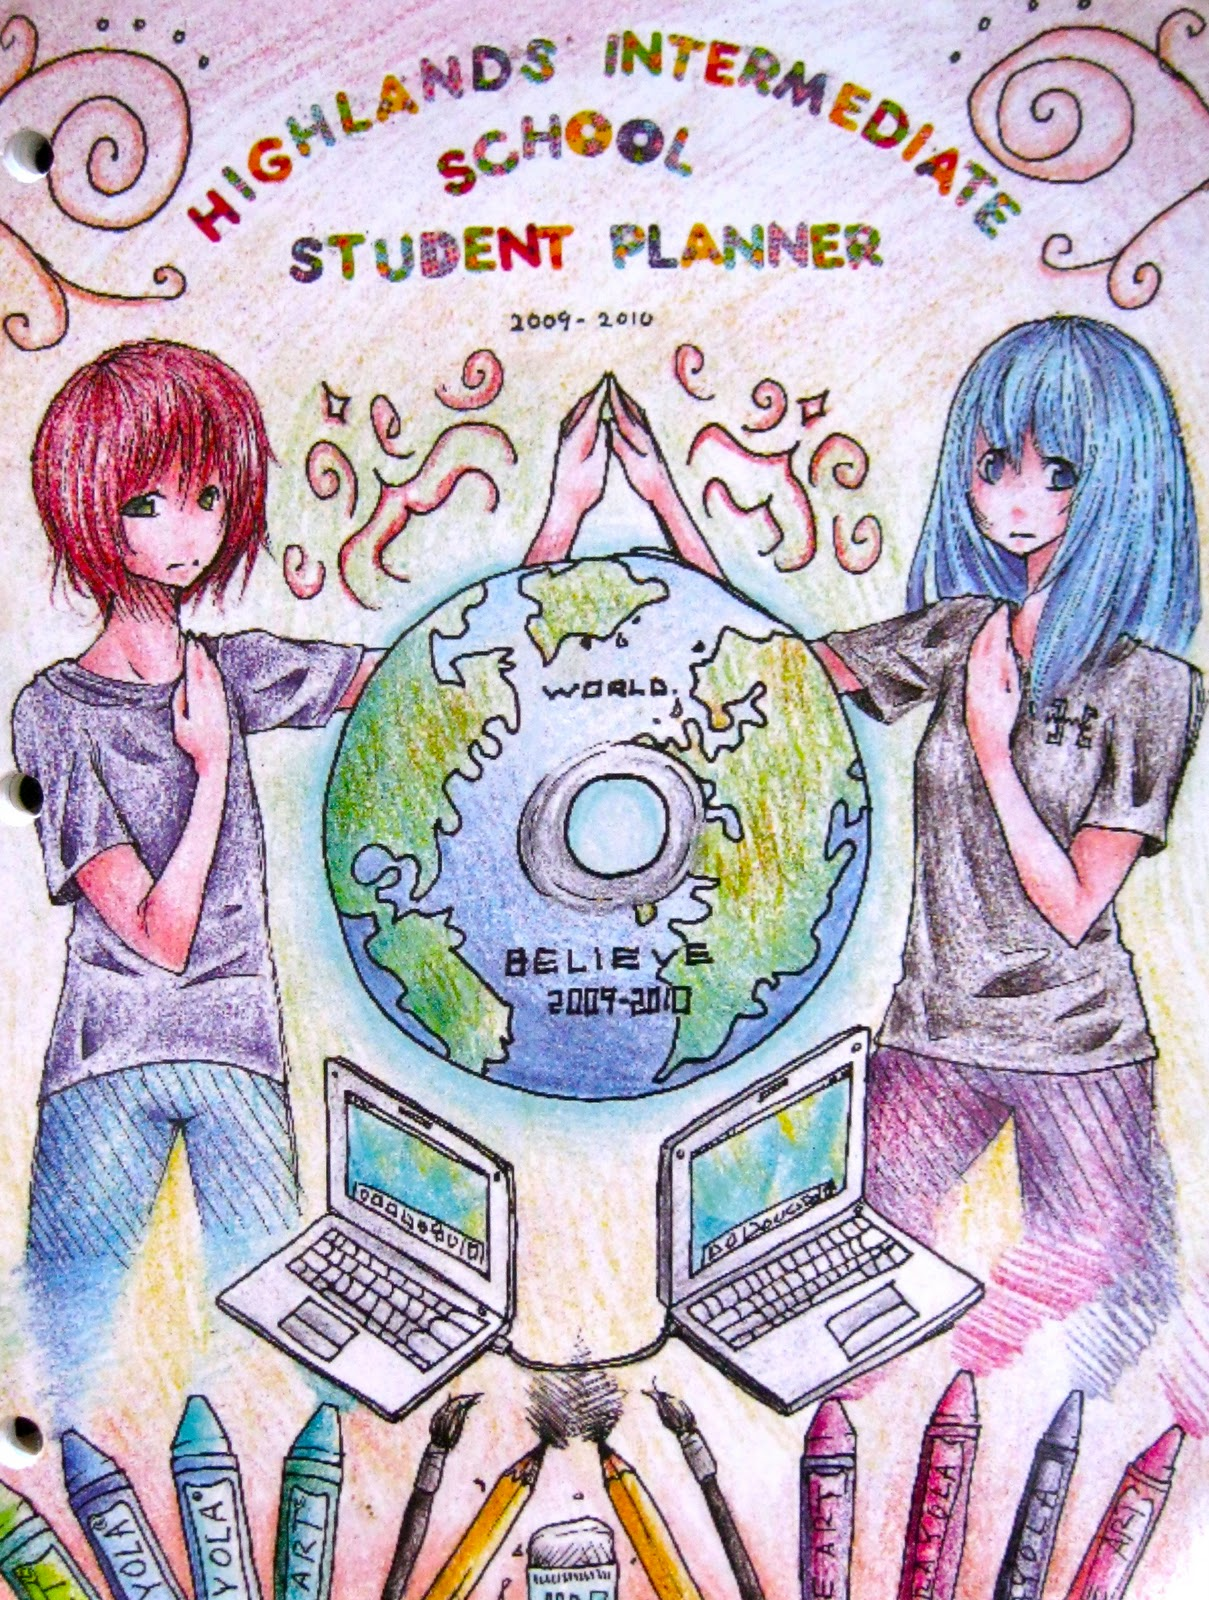 Book Cover Ideas For Competition : Highlands intermediate student activities planner